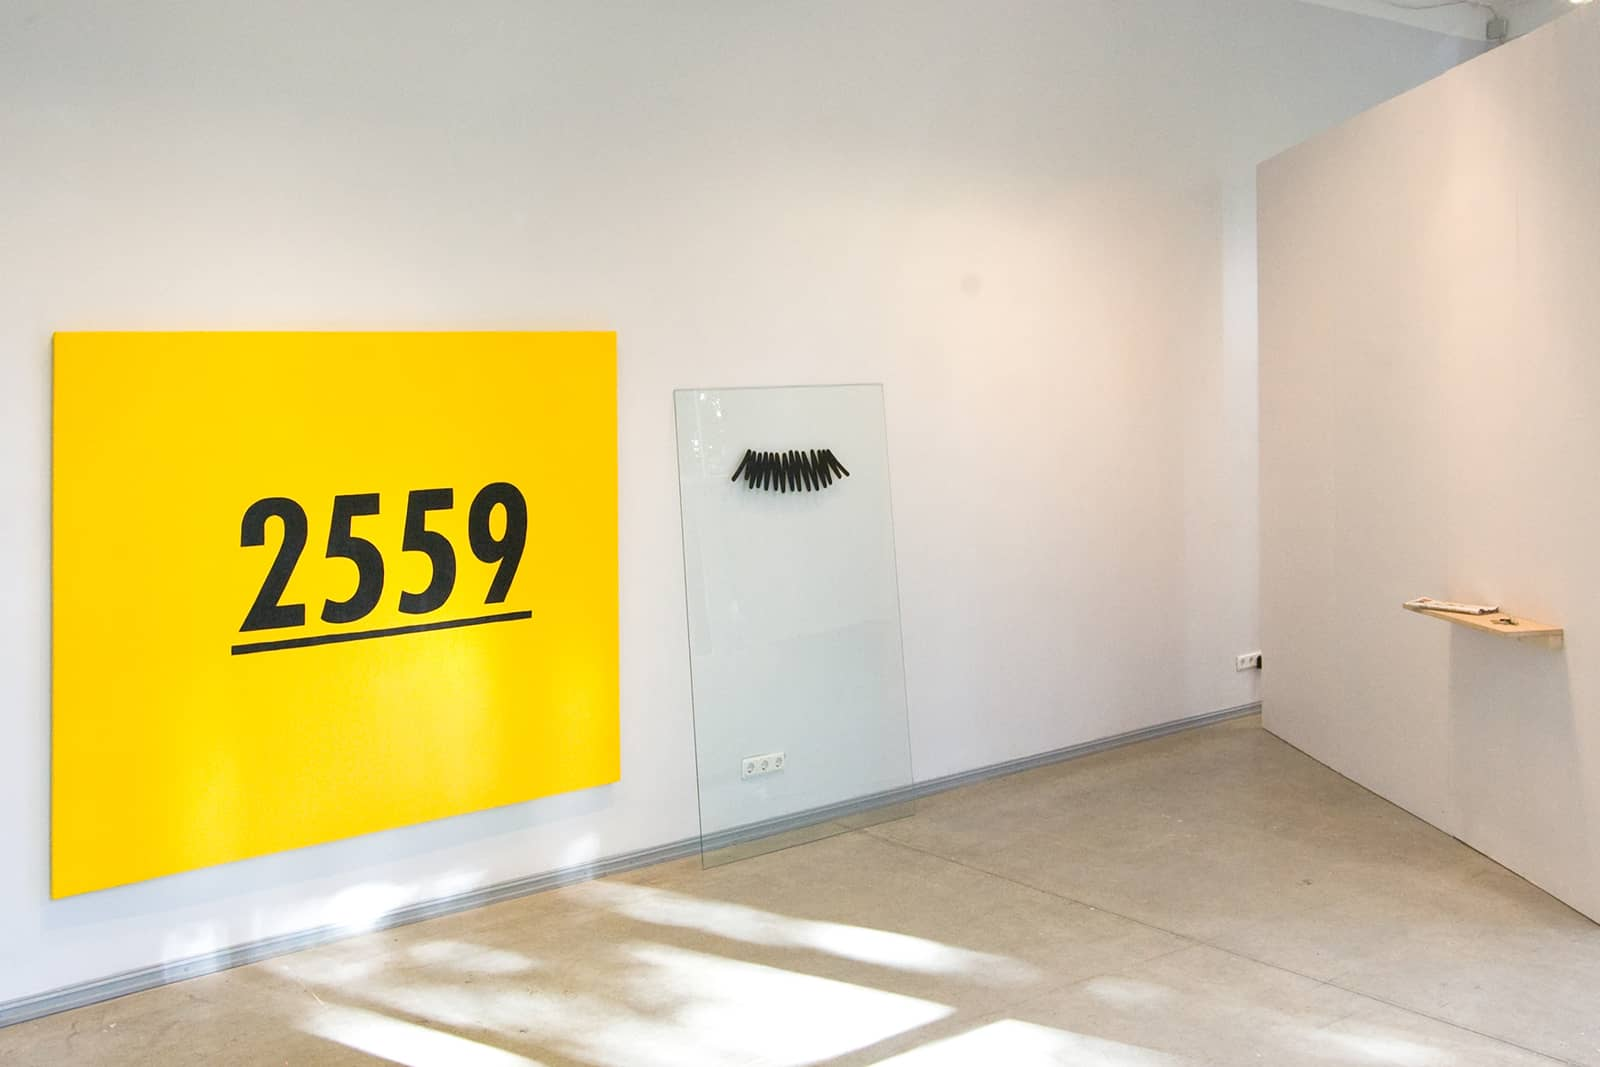 Exhibition overview with Received Number - Oil on canvas, 175 x 200cm, 2011 and Moustache Piece - Vinyl on glass, 2011